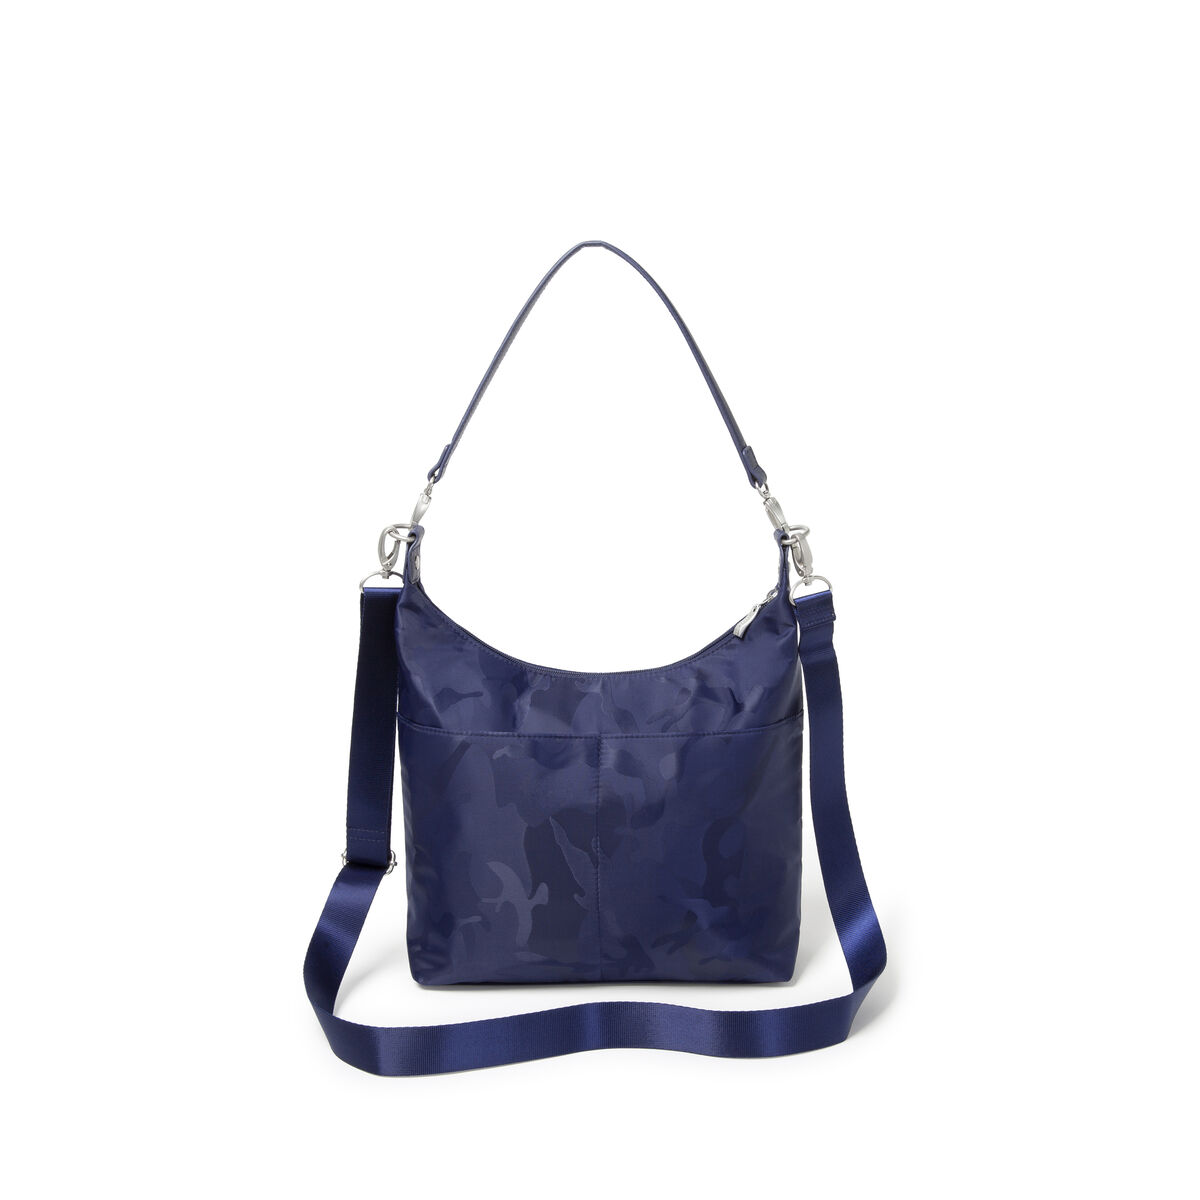 convertible large hobo tote